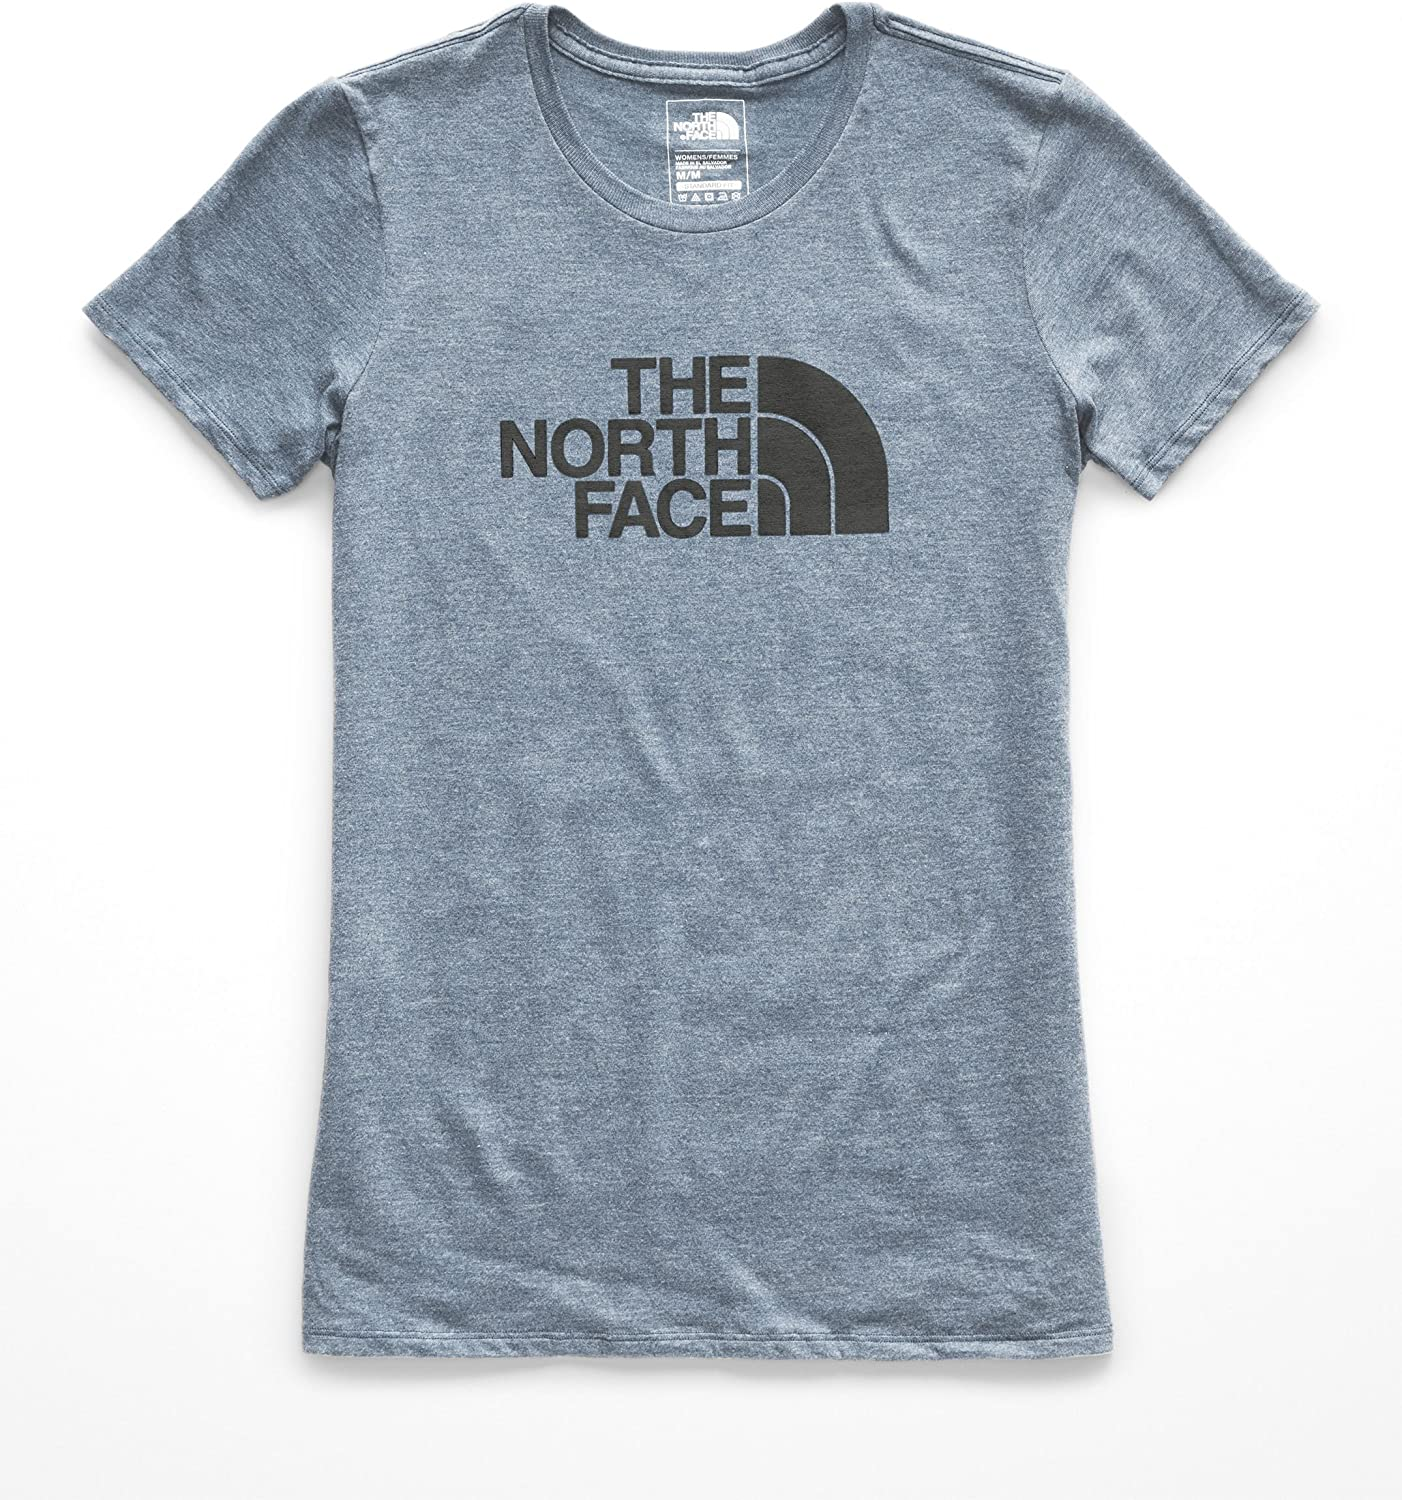 The North Face Women's Half Dome Tri-Blend Tee